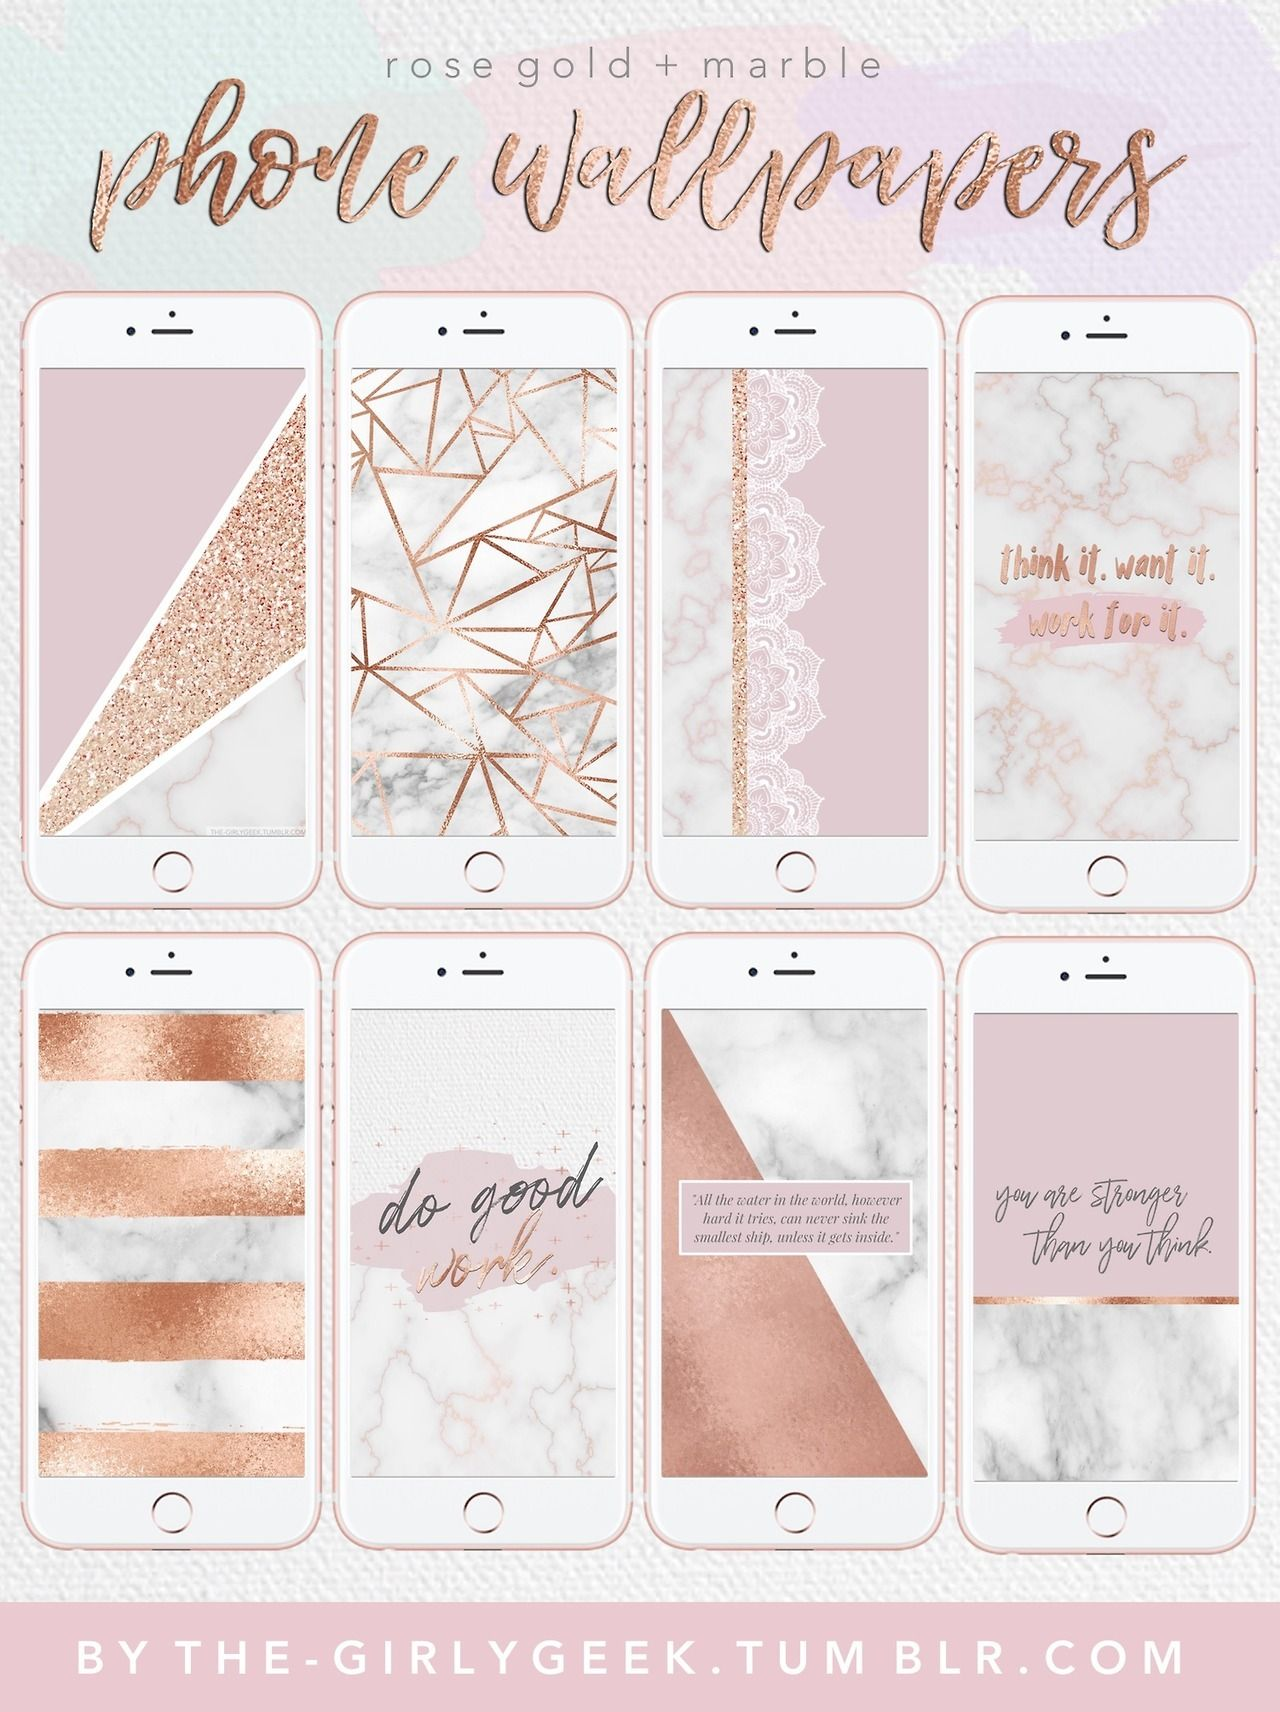 Art Iphone And Pink Image Wallpaper Iphone Cute Pink Wallpaper Iphone Lock Screen Wallpaper